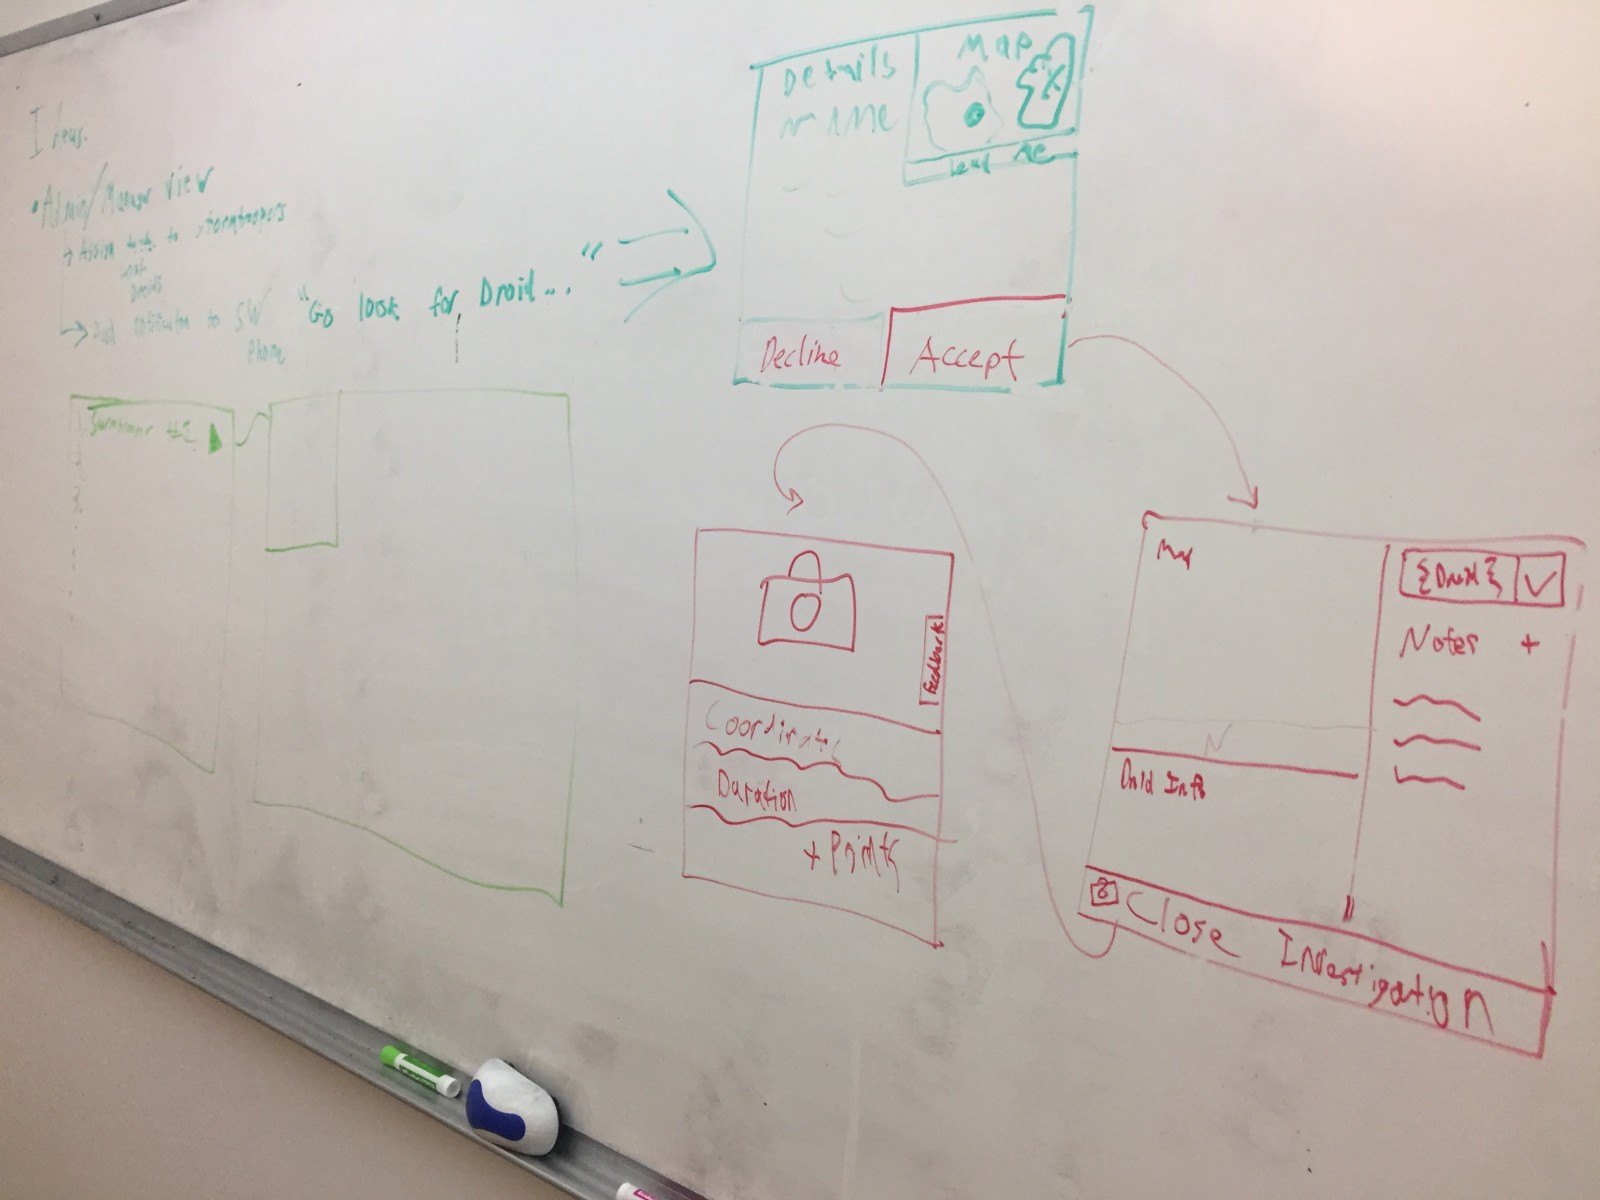 Our SA team sketching wireframes on the whiteboard